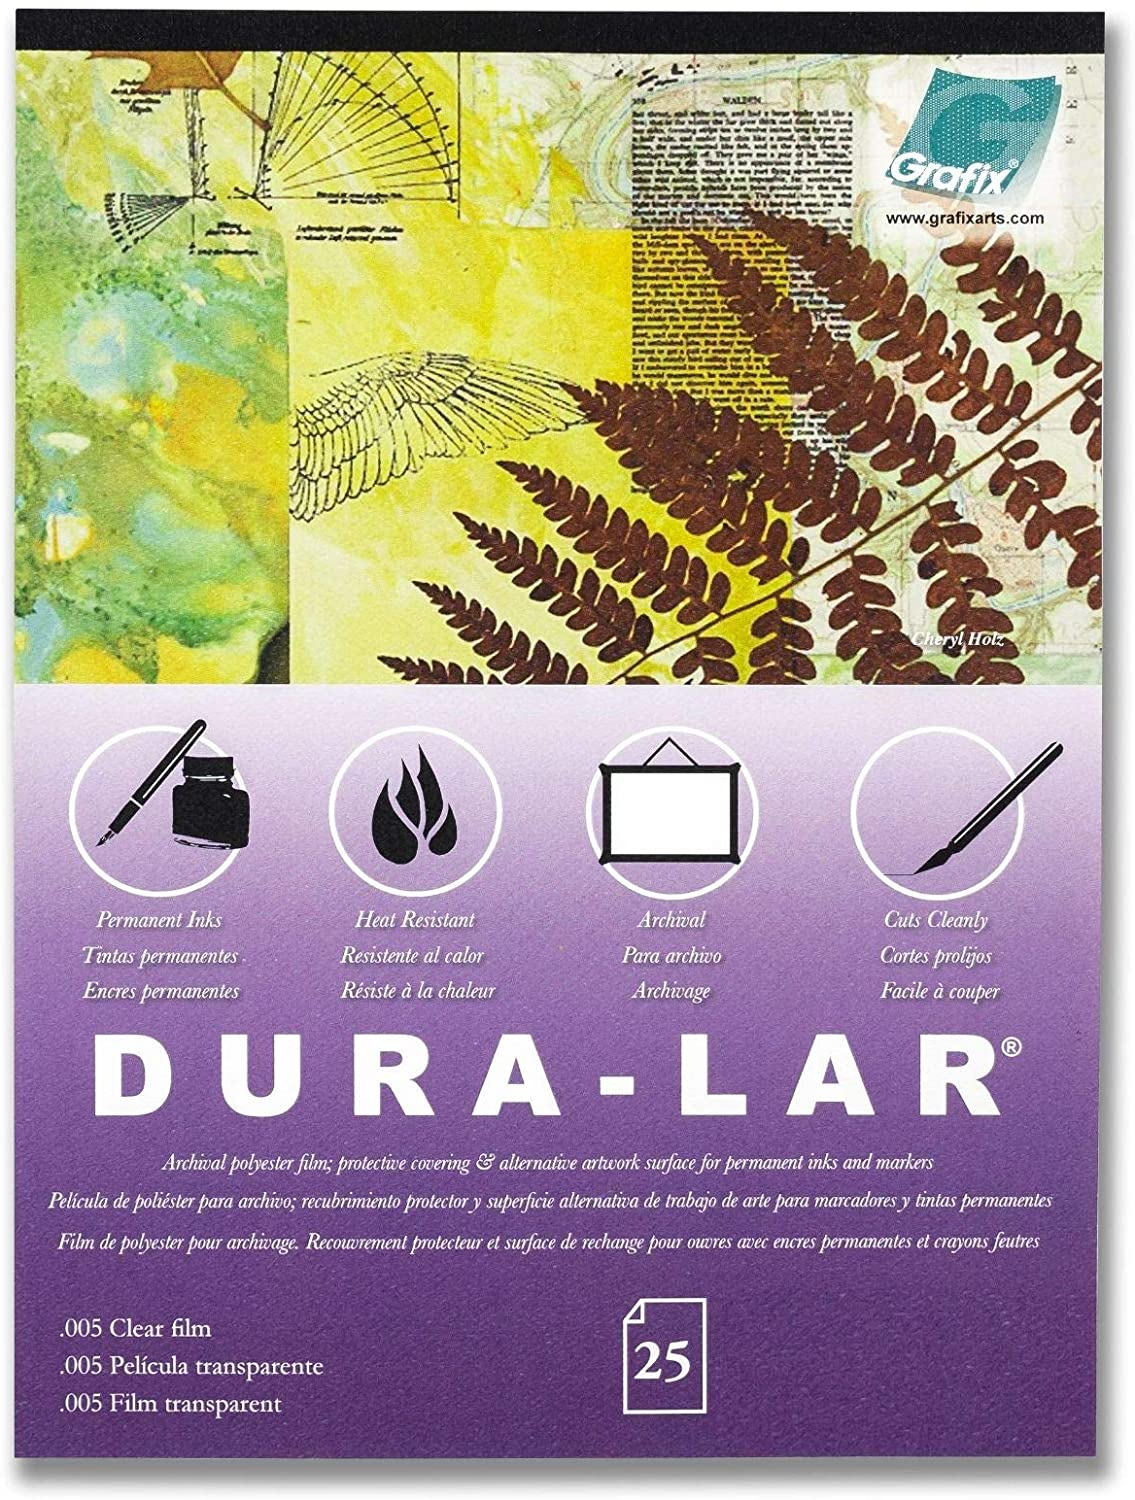 """Grafix Dura-Lar Clear 9 x 12"""", Pad of 25 – Ultra 003"""" Film, Acetate Alternative, Glossy Surface for Coverings, Stencils, Color Separation, Window Applications, Transparencies"""